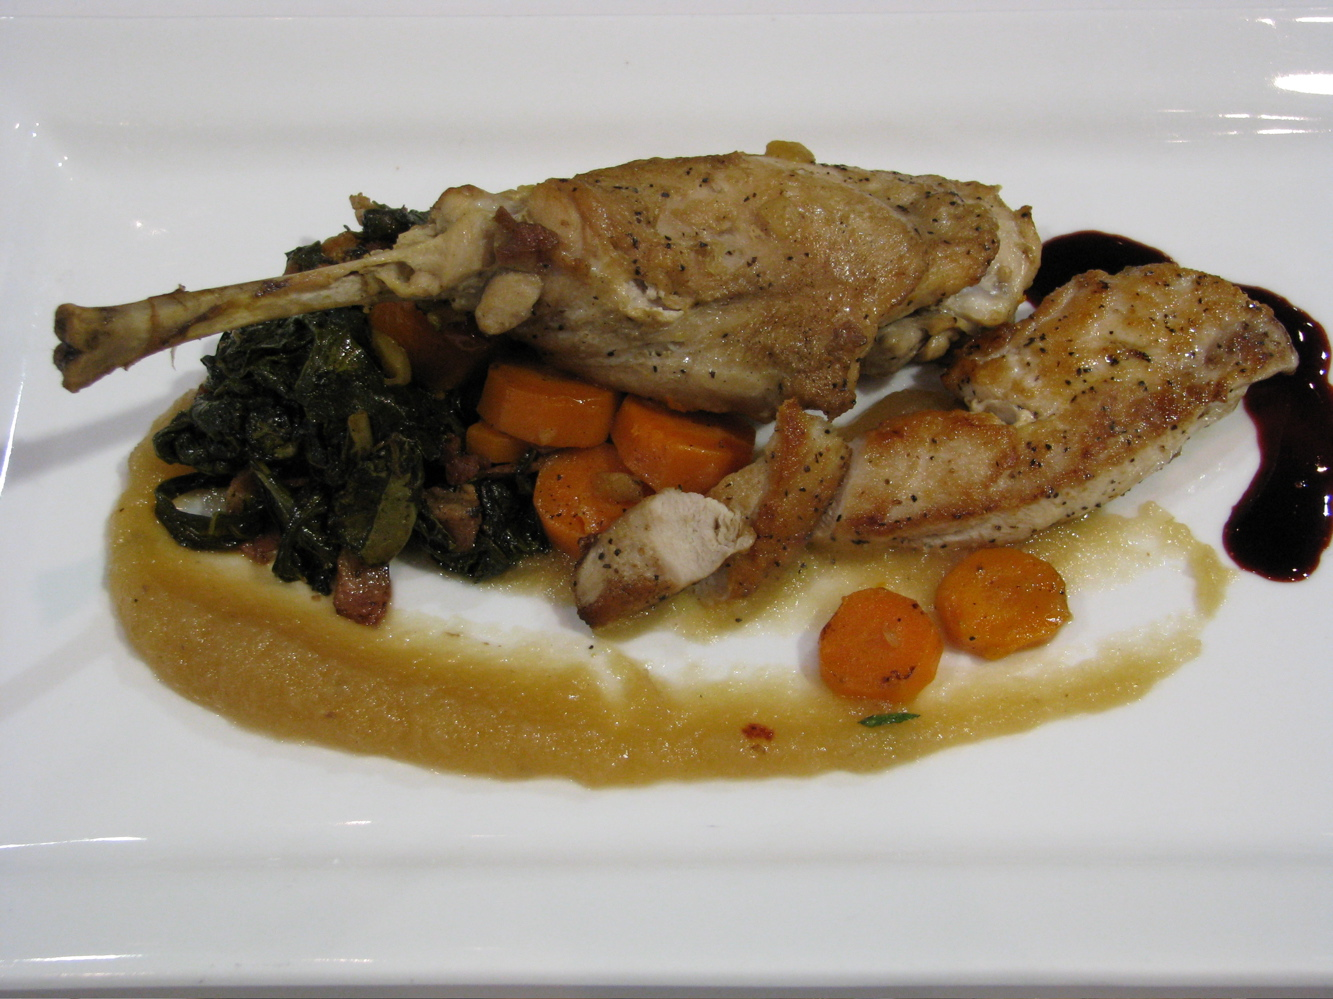 Iron Chef Final Round dish by Chef Jacob Peck and Sous Chef Greg Wallis of Forty Two. Roasted rabbit with a raspberry coulis, sweet applesauce, carrots and greens w/bacon. This was the winning dish.